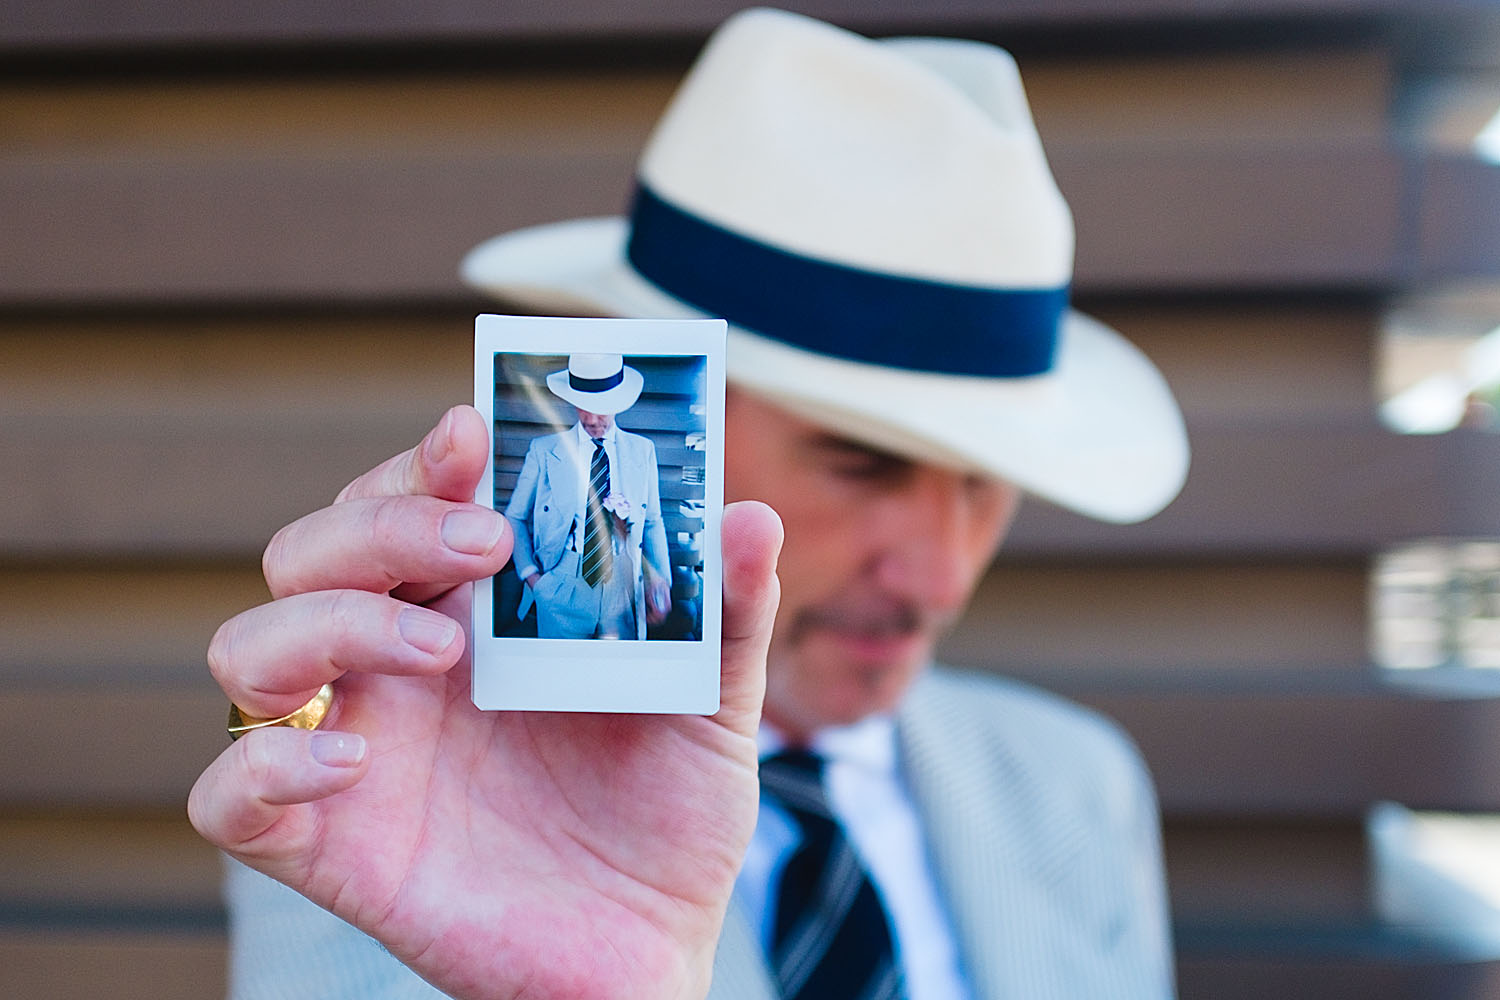 92 pitti immagine uomo florence photos instax cover